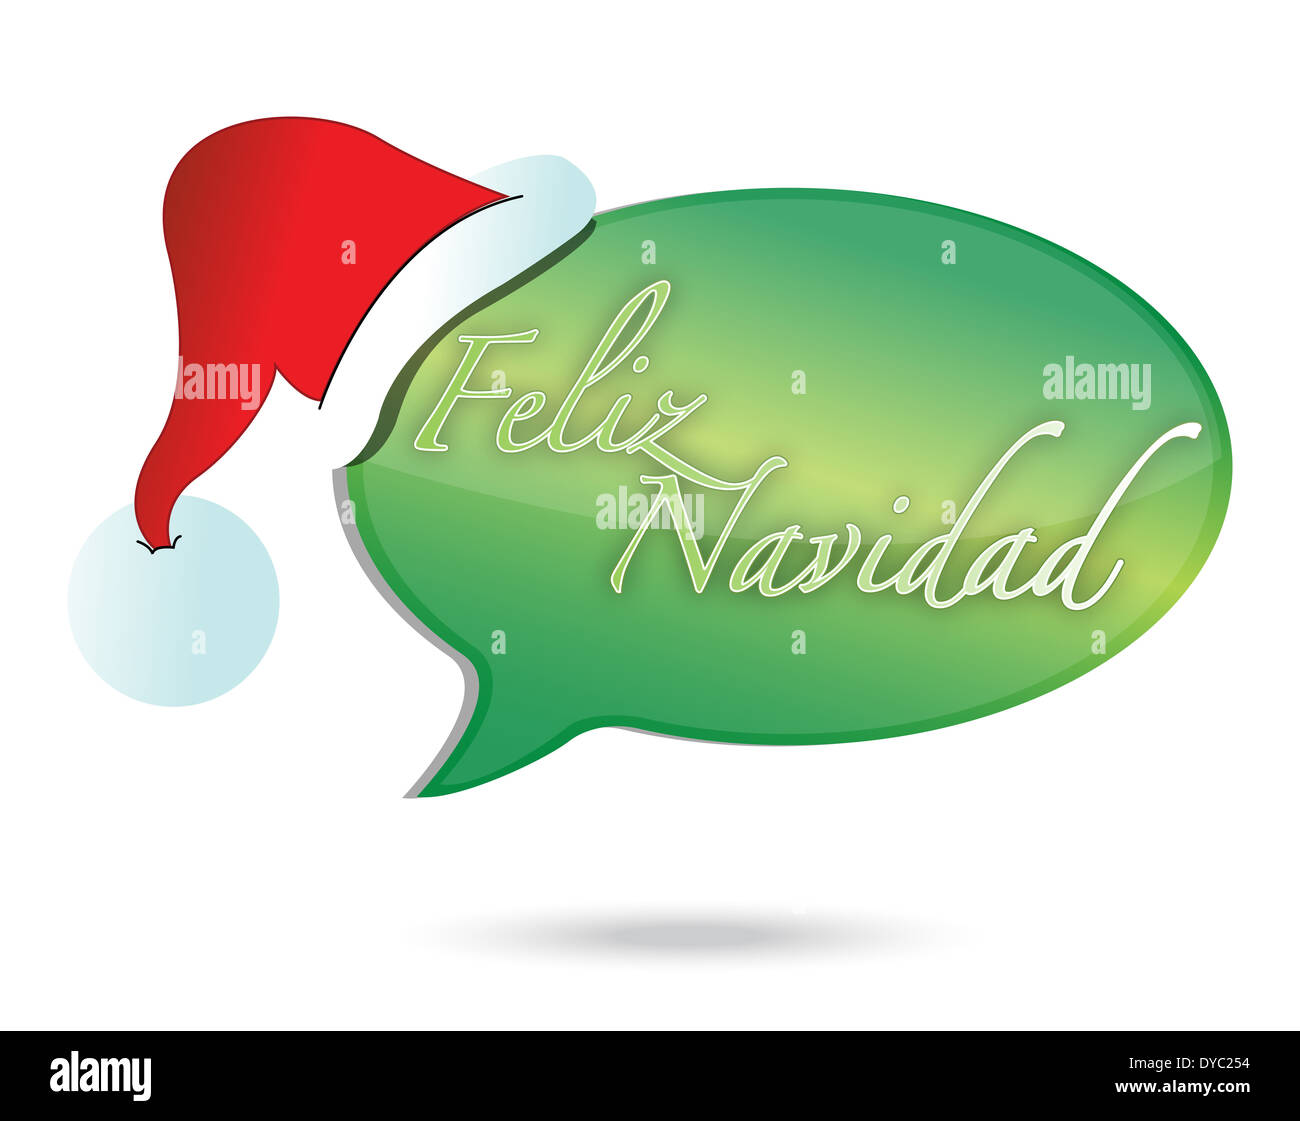 Christmas Wishes In Spanish.Merry Christmas Message In Spanish Illustration Design Over